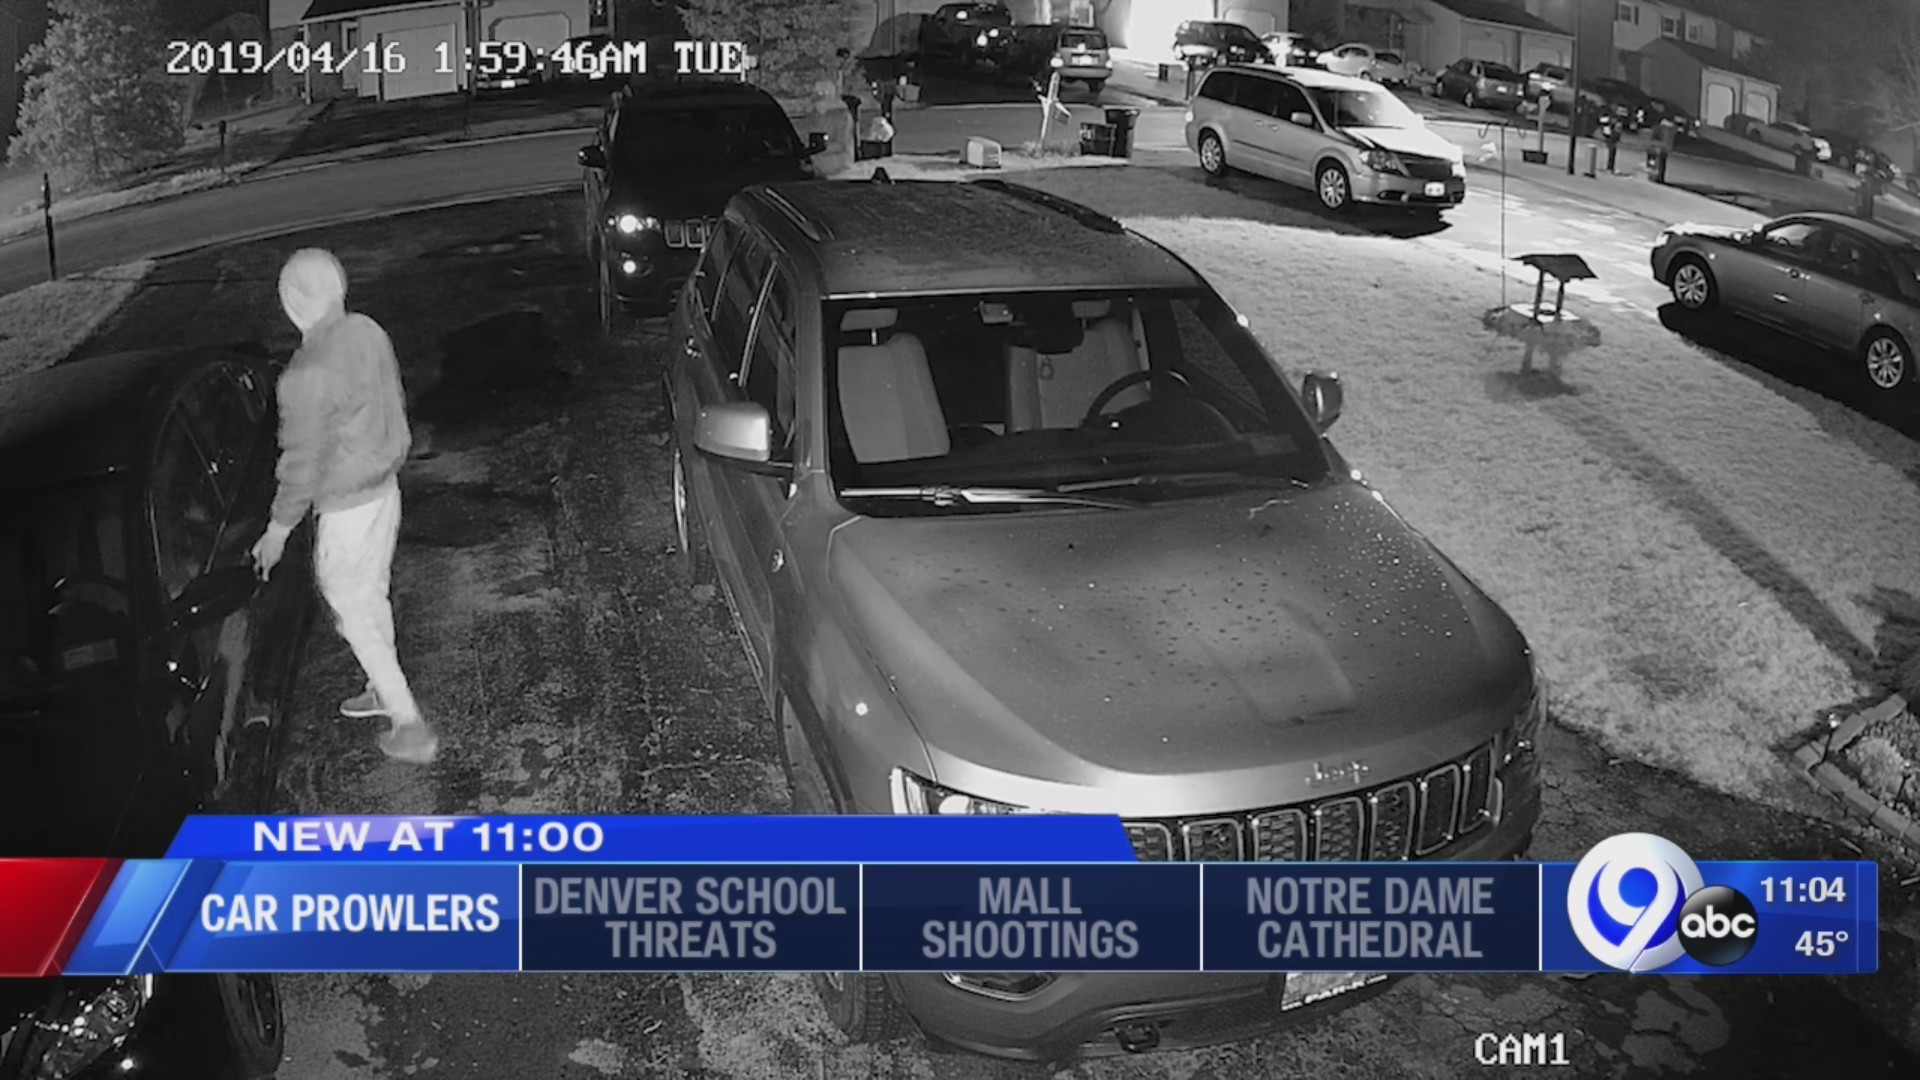 Video_shows_suspects_trying_to_get_into__0_20190417030900